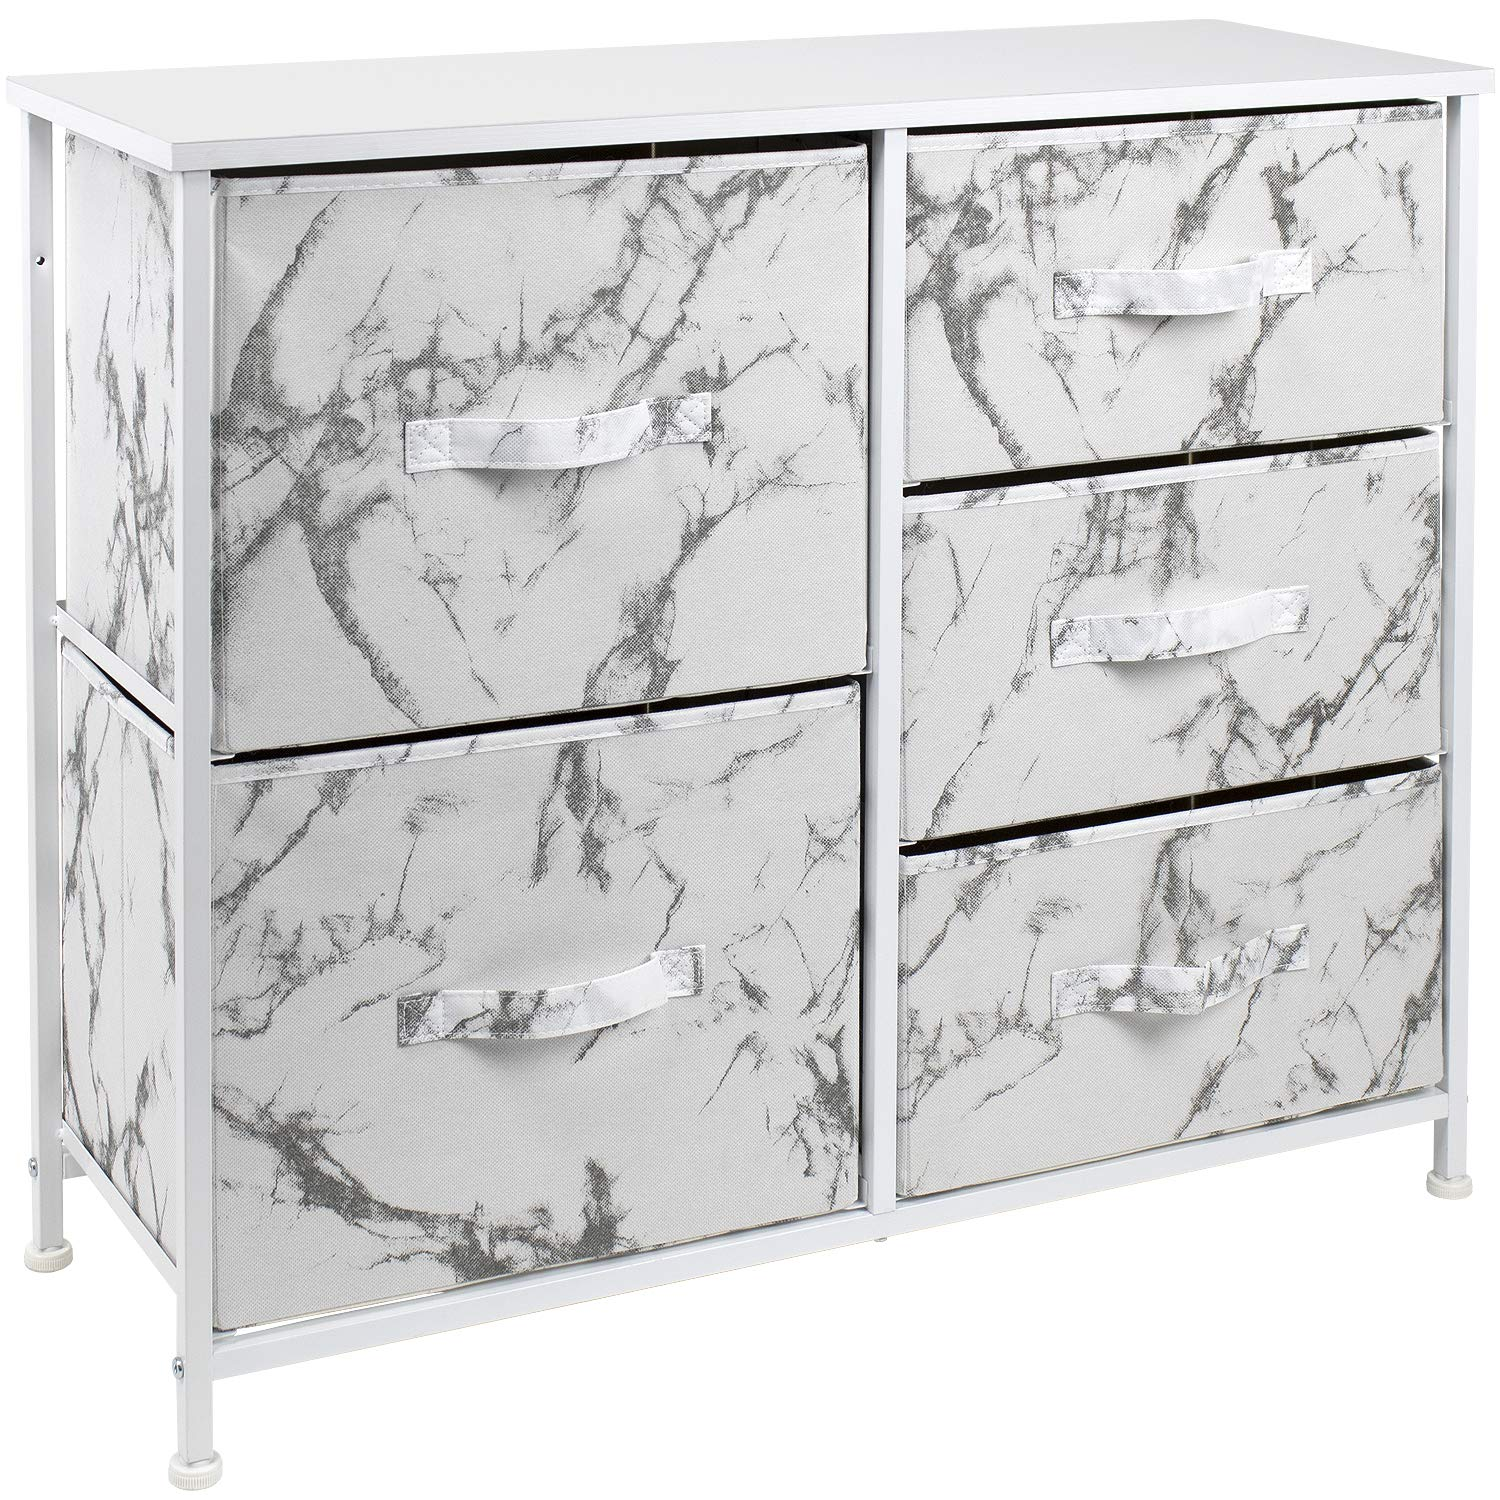 Sorbus Dresser with 5 Drawers - Furniture Storage Tower Unit for Bedroom, Hallway, Closet, Office Organization - Steel Frame, Wood Top, Fabric Bins (5-Drawer Dresser Chest, Marble White – White Frame)